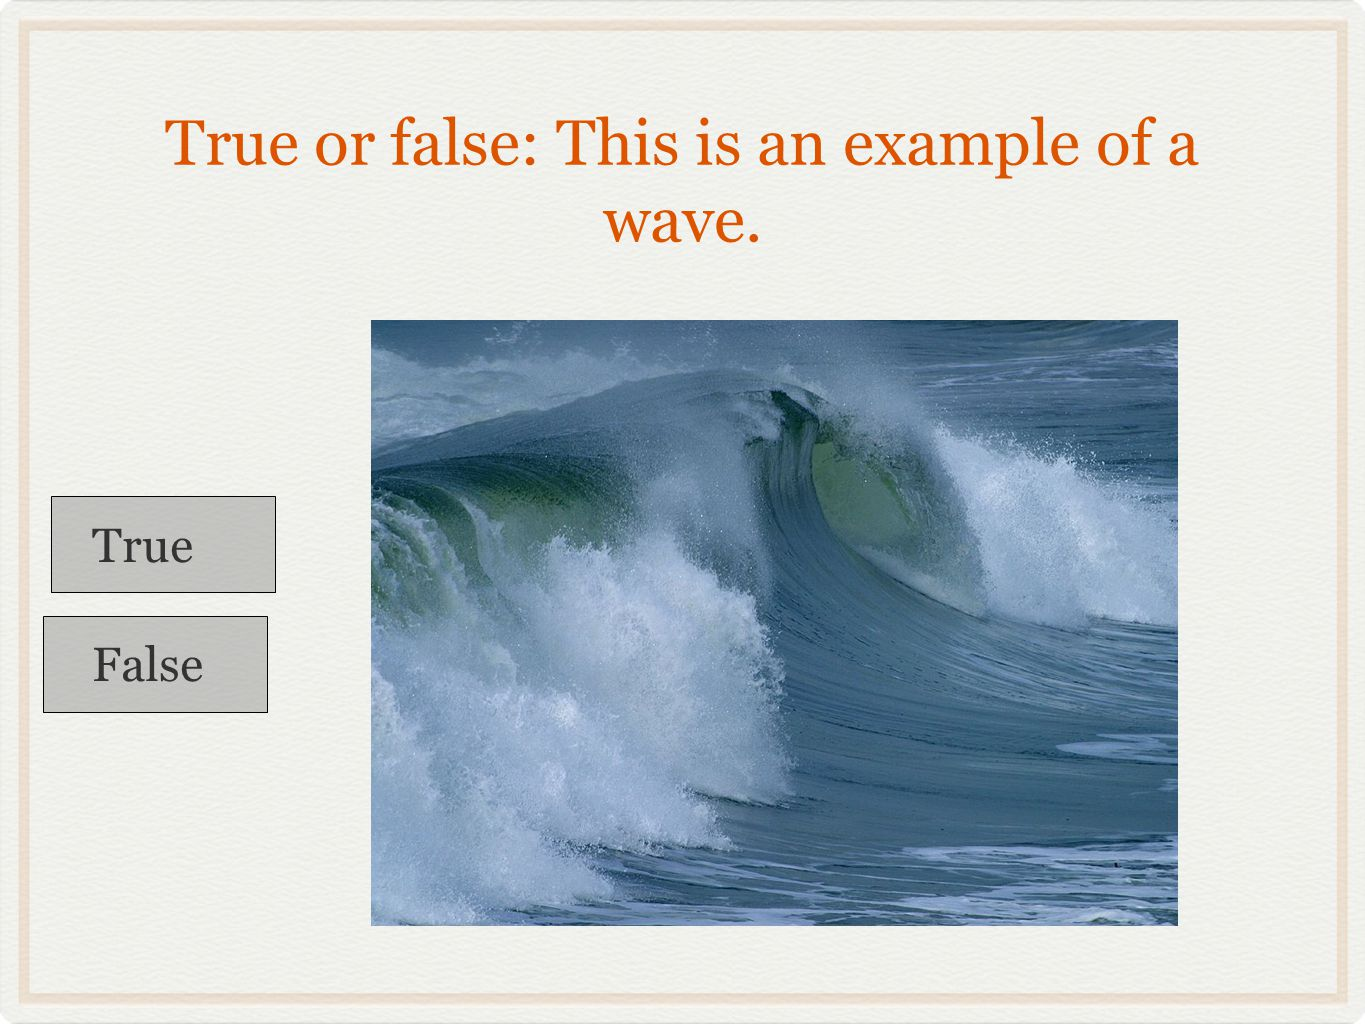 True or false: This is an example of a wave.